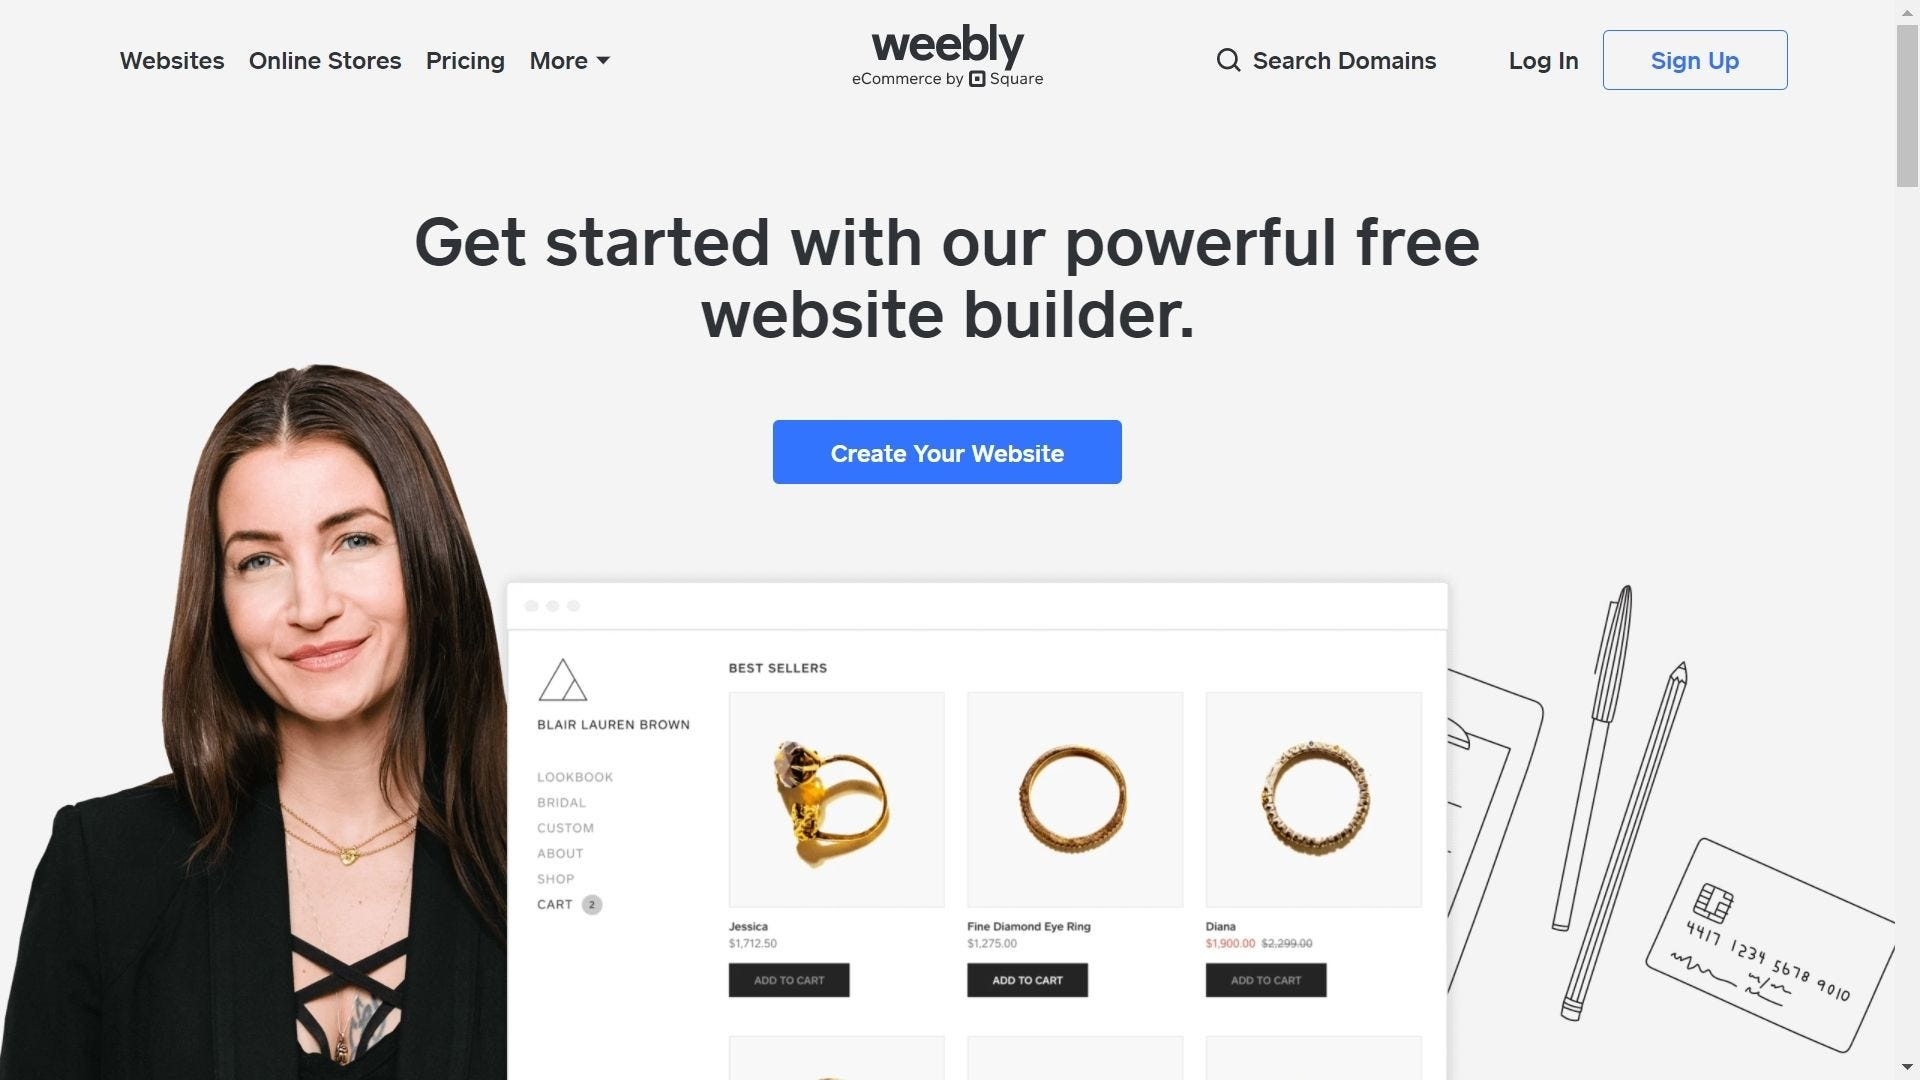 weebly website builder home page